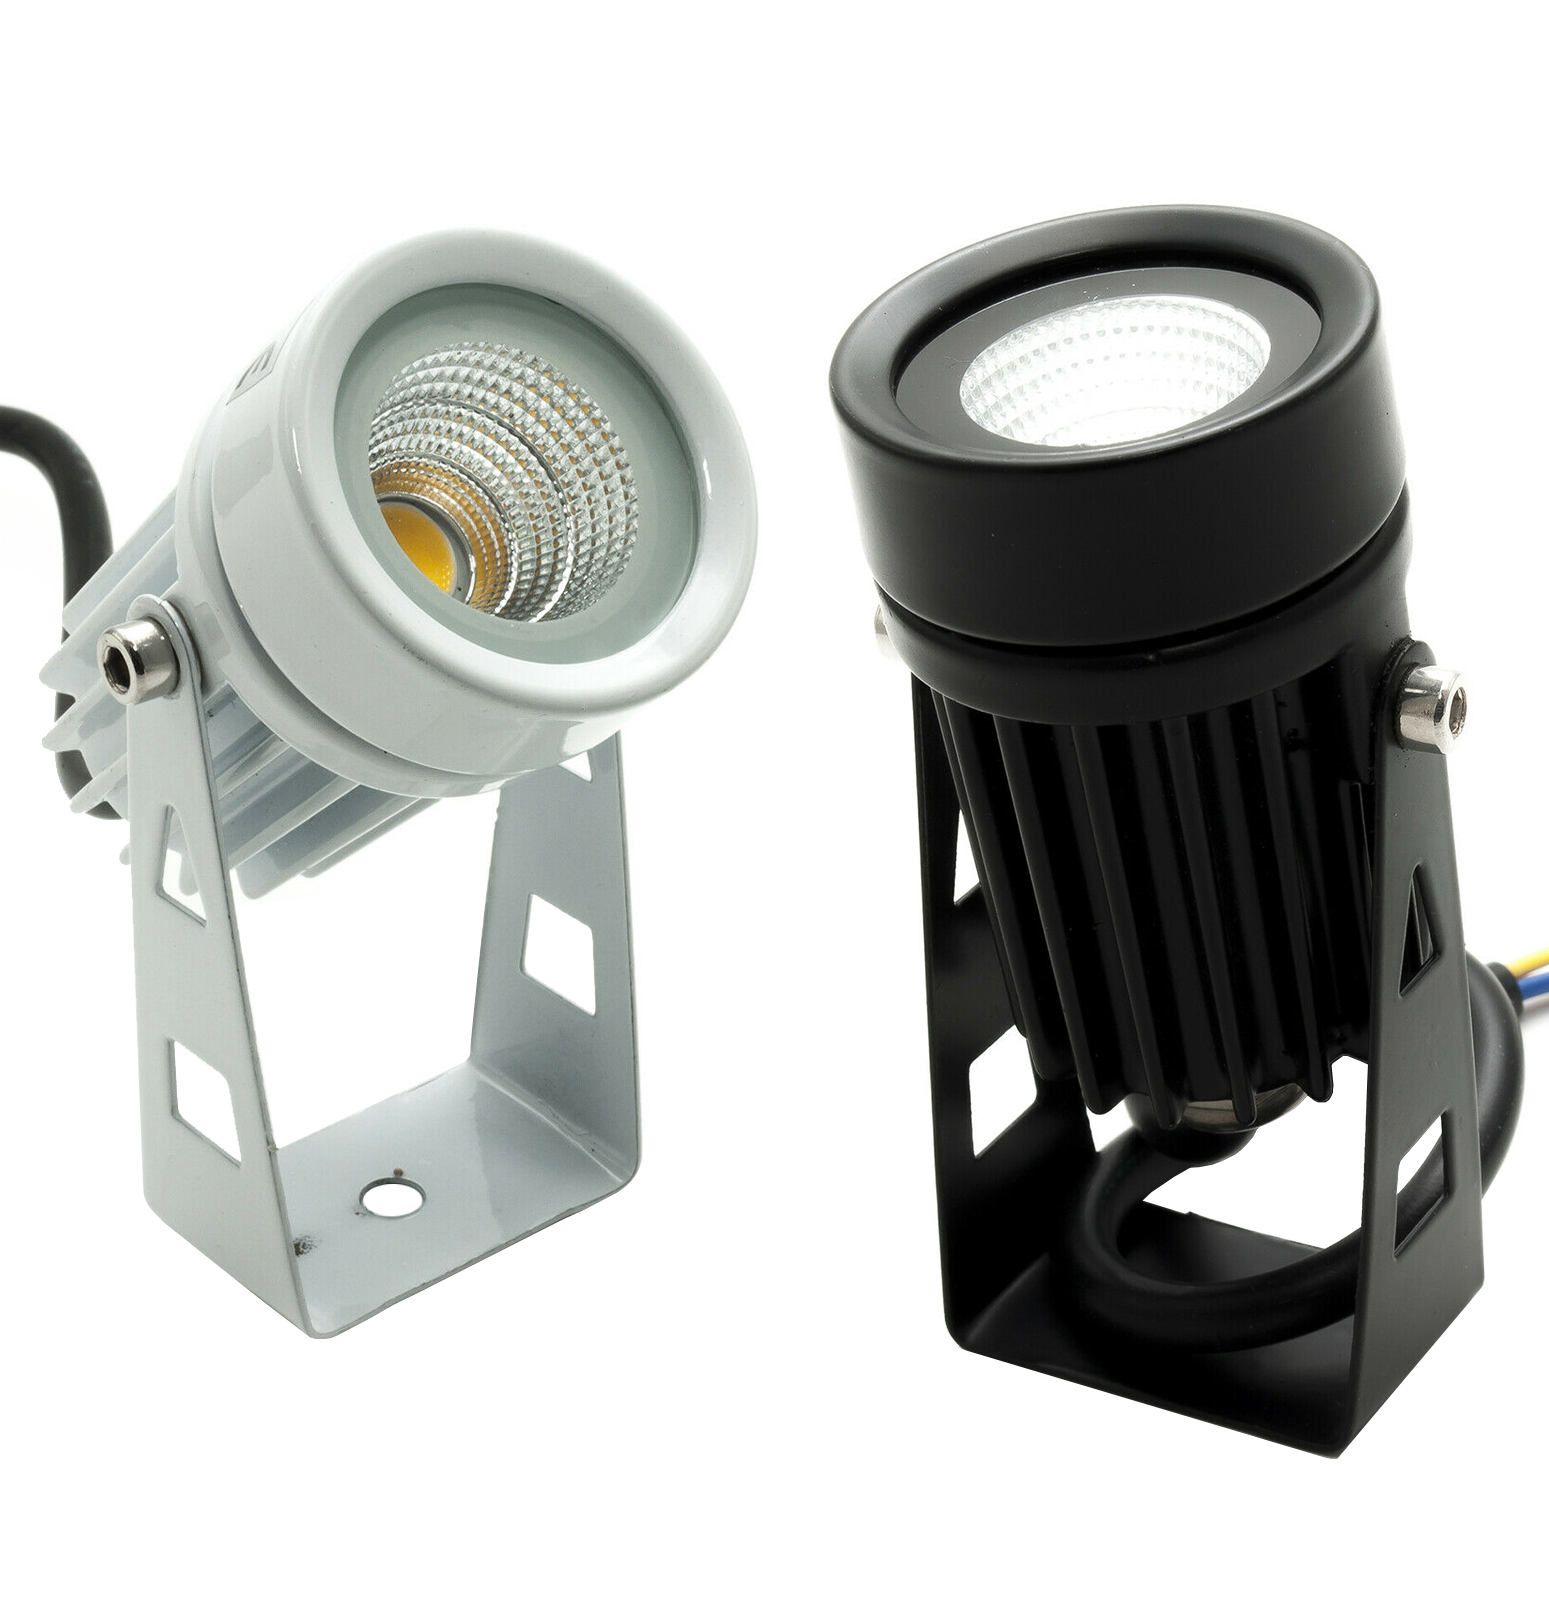 Spotlight LED spot bracket adjustable 3.5 W outdoor garden light wall IP65 230V